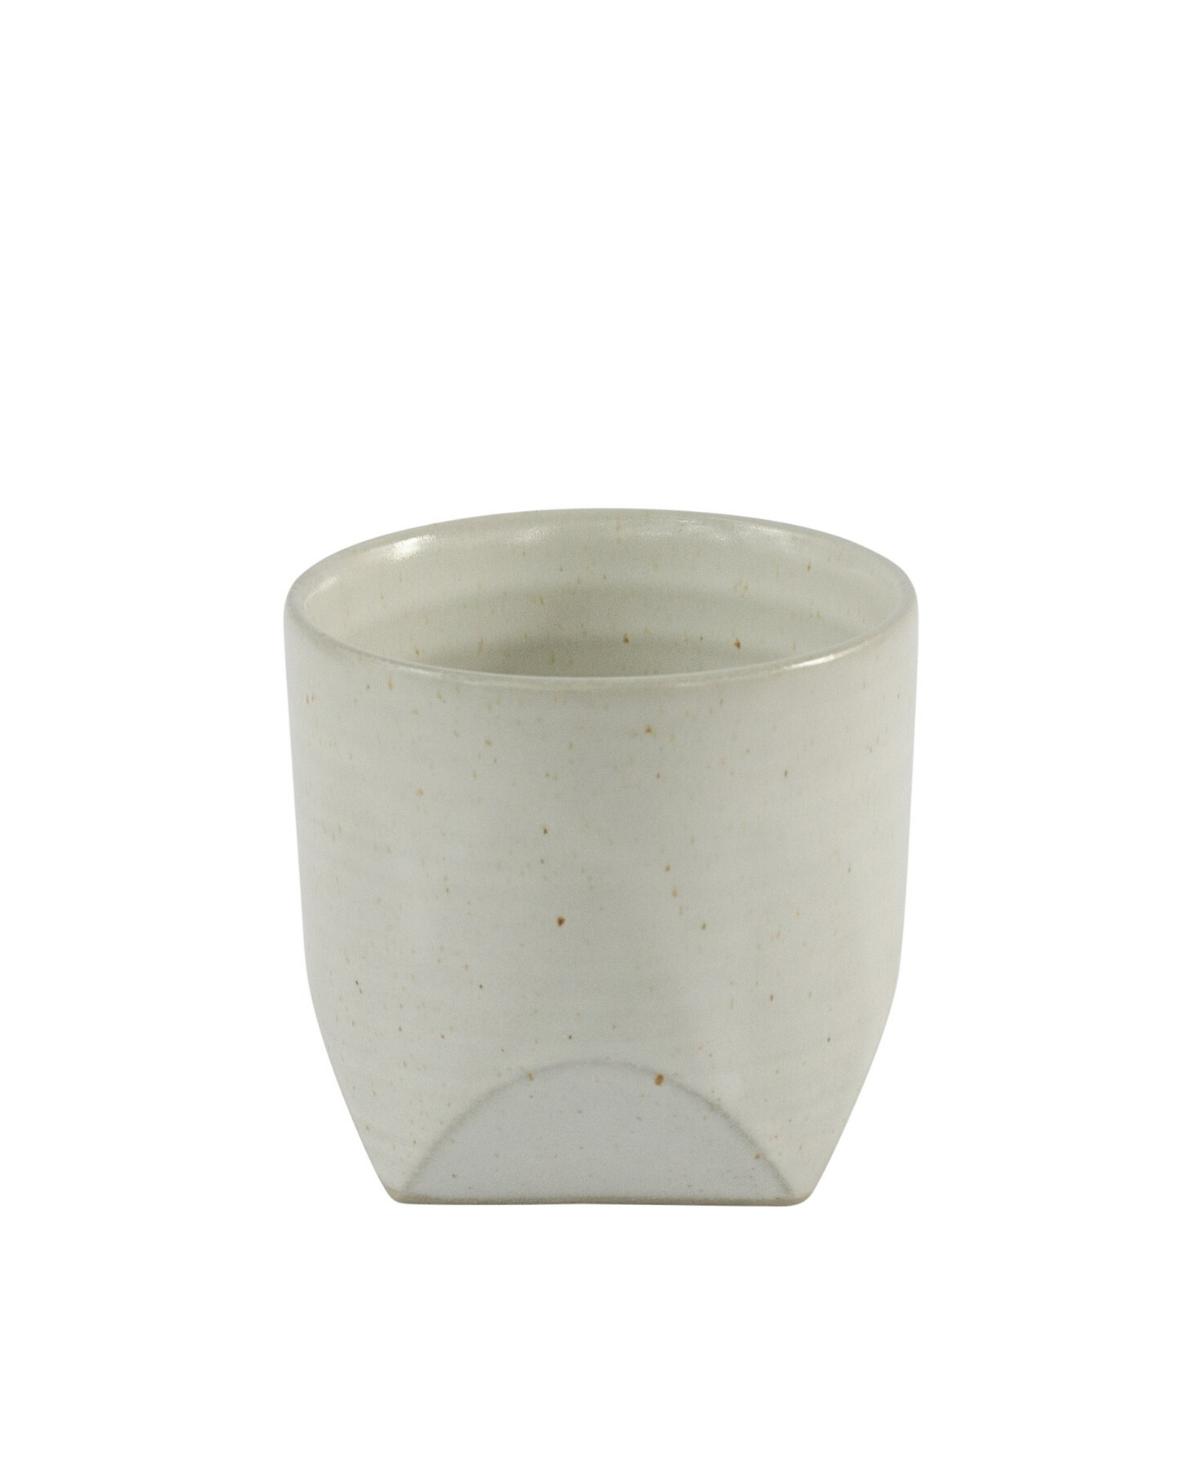 Ceramic Tumbler with Square Base